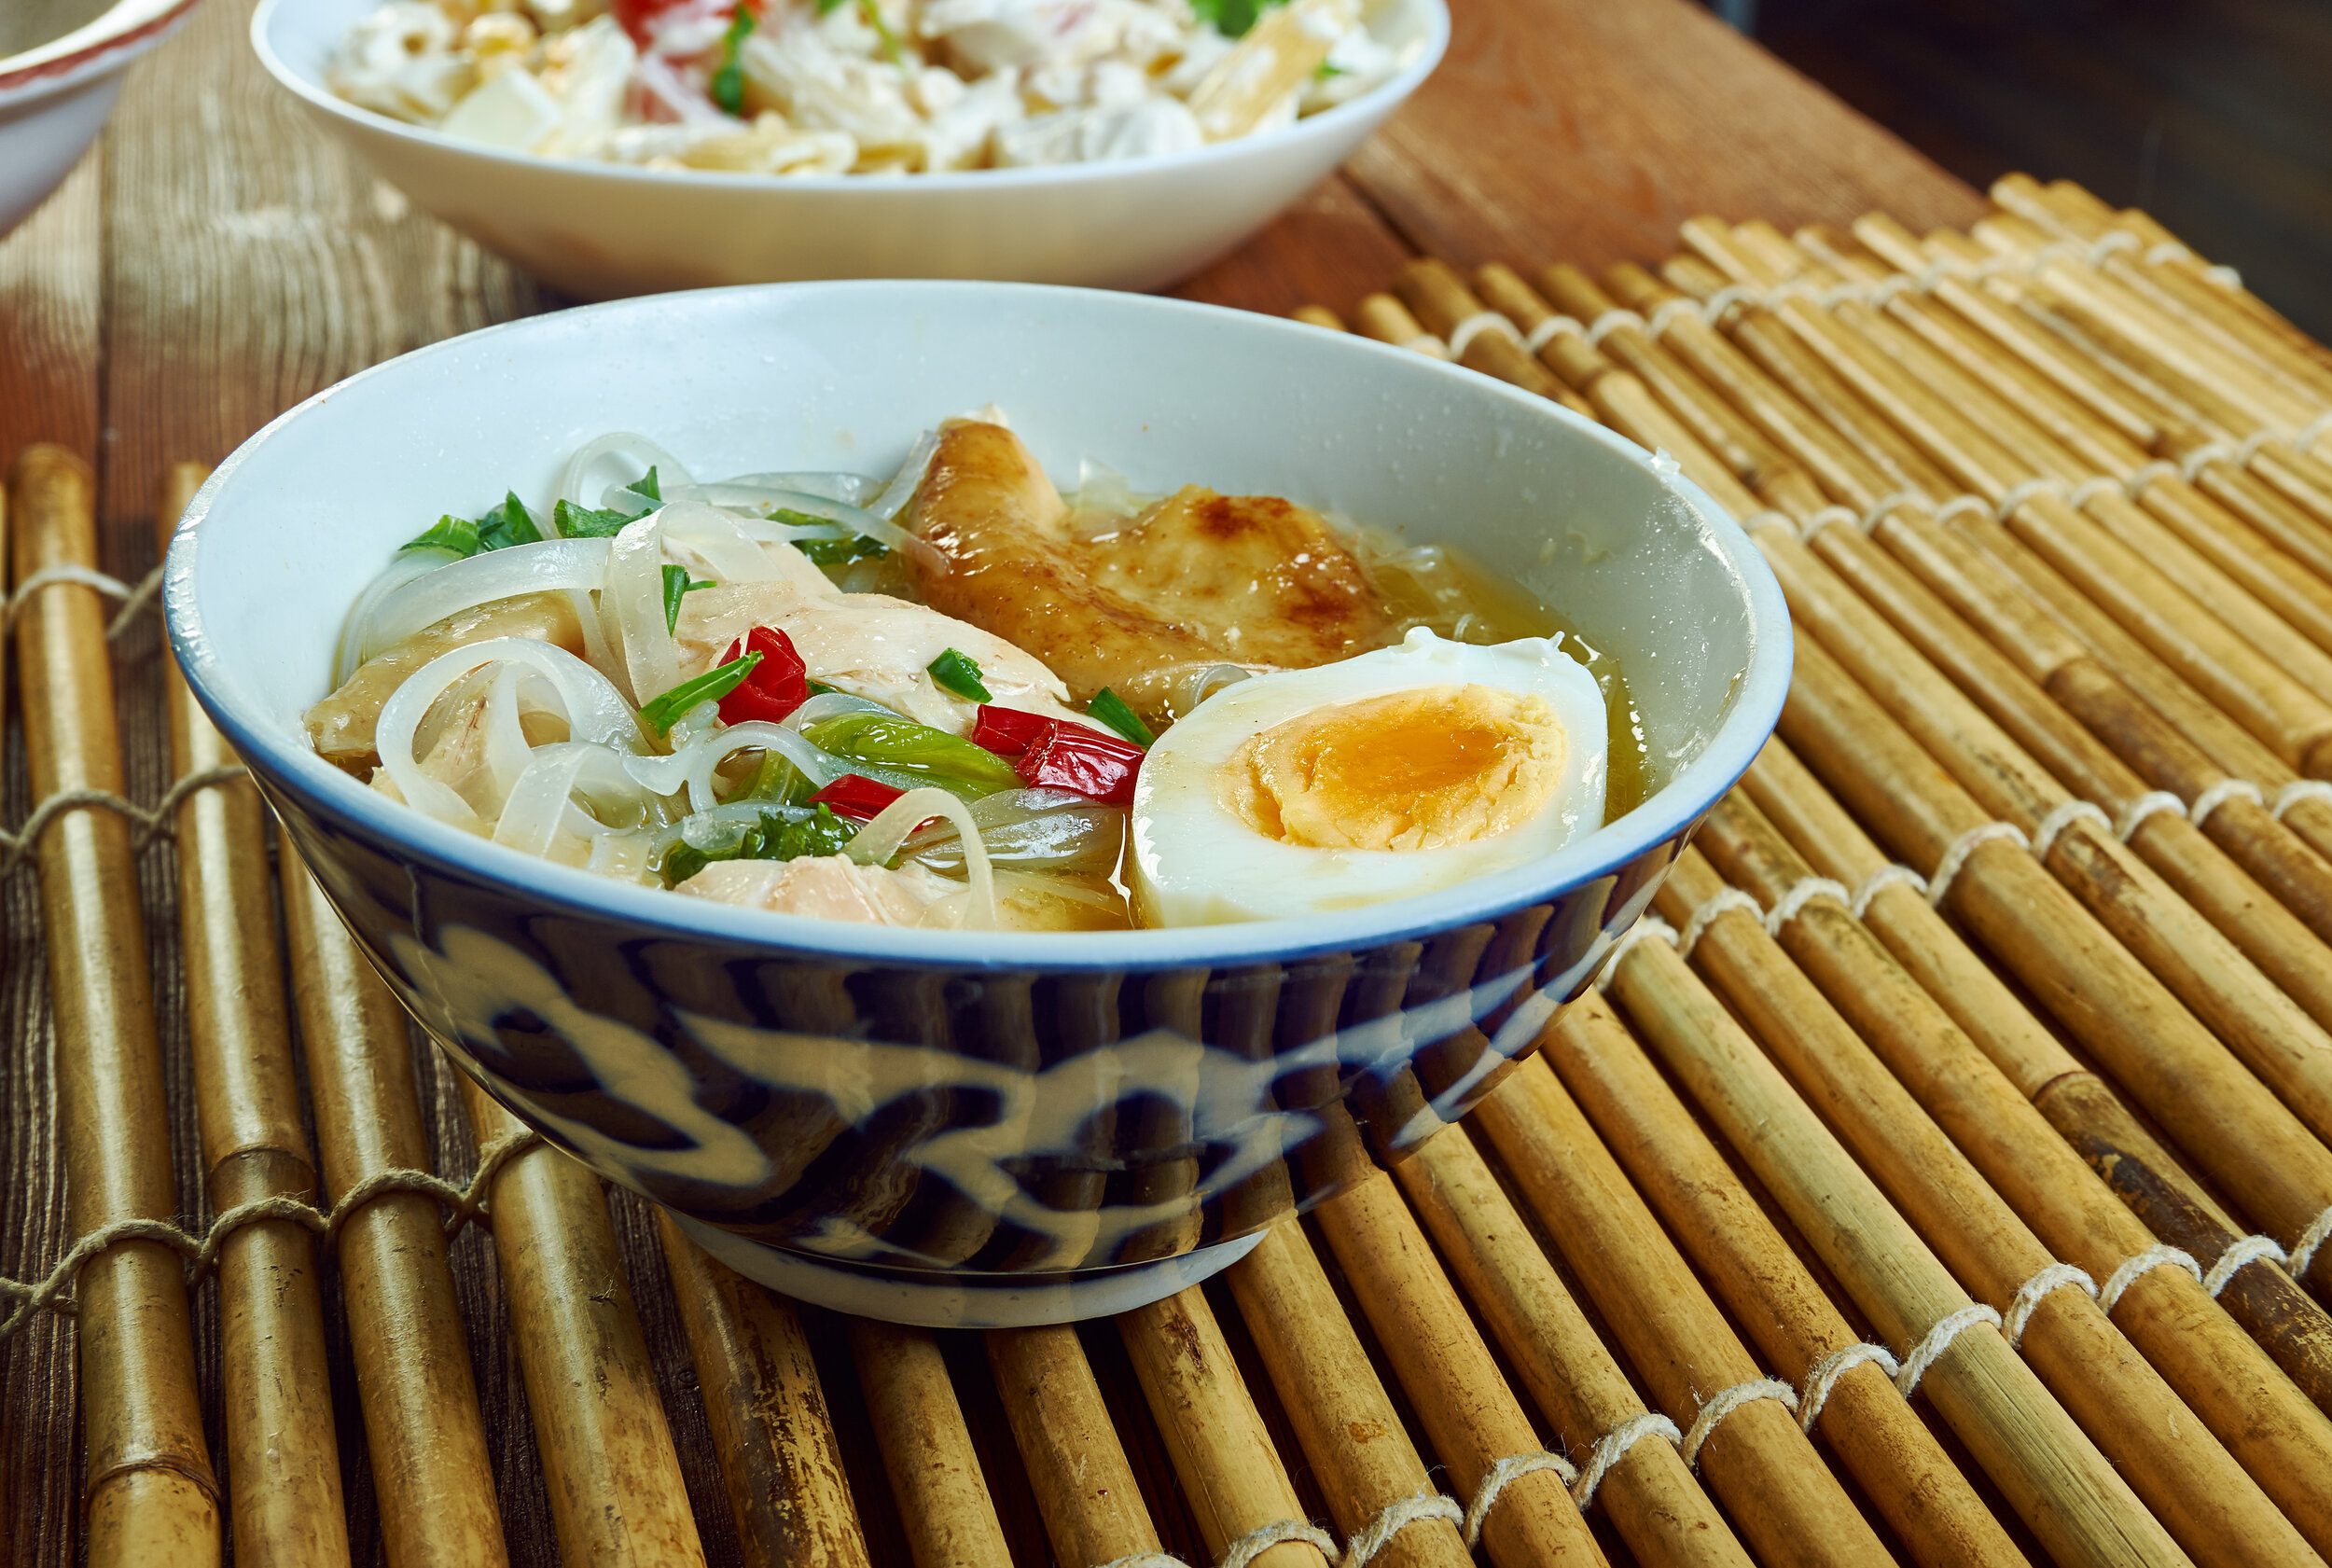 Noodles are a popular street food in the Philippines.